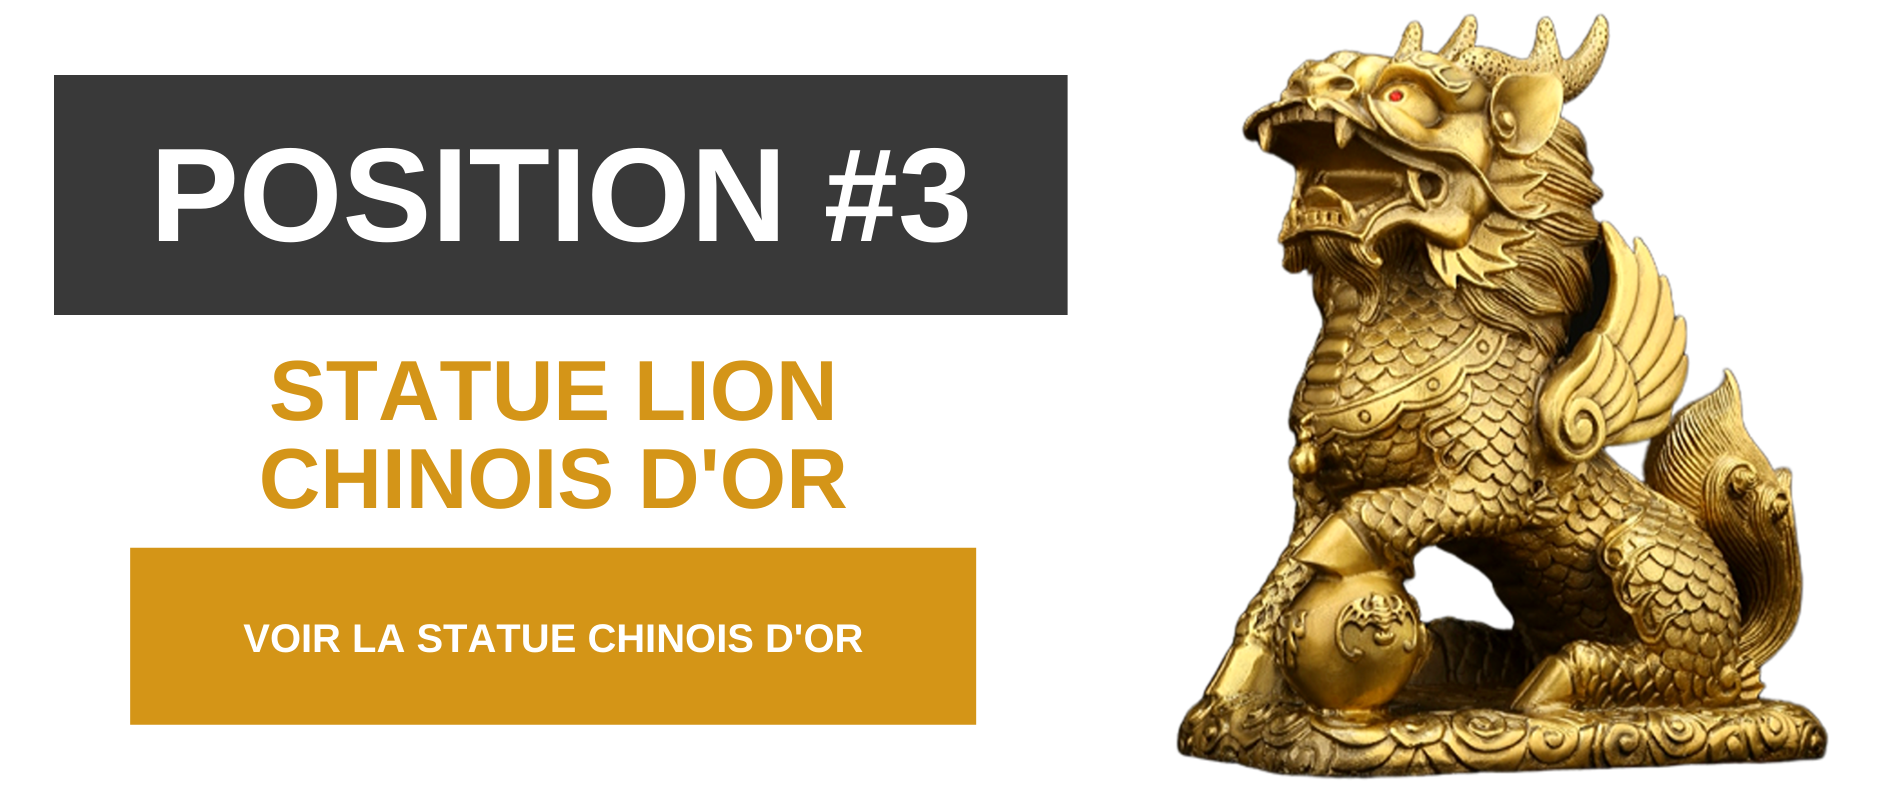 Statue lion chinois.